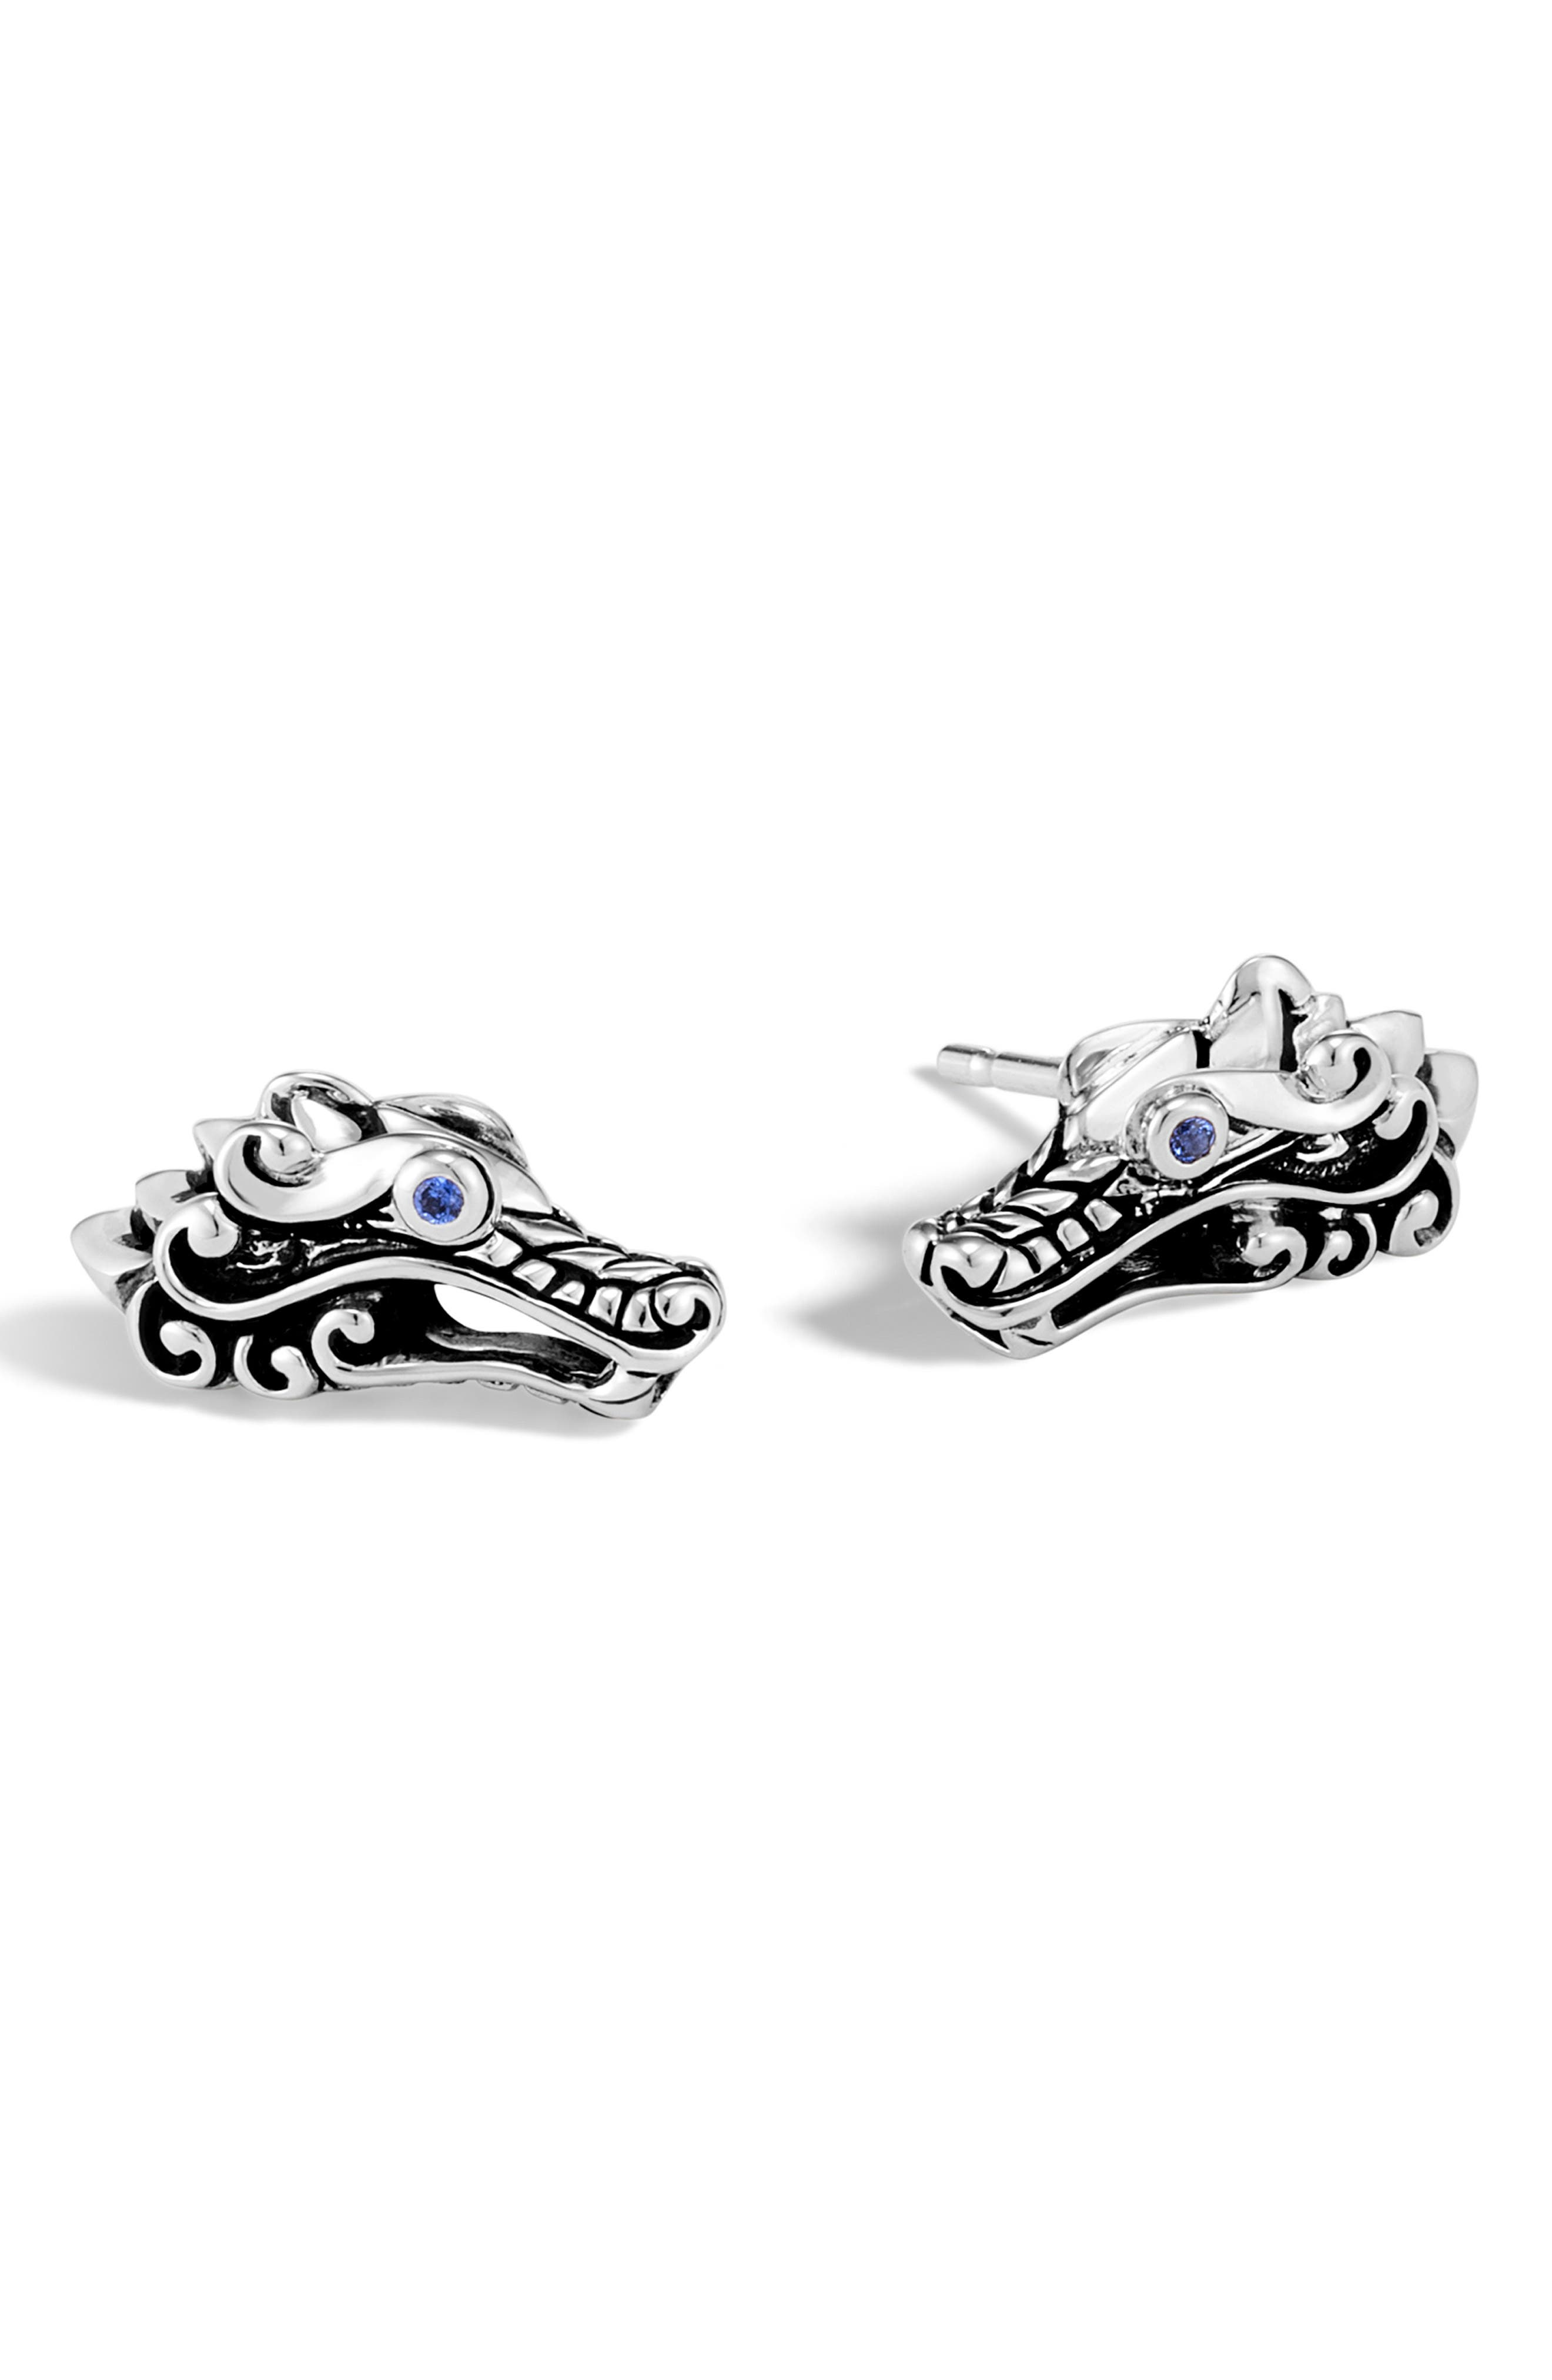 Sterling Silver Legends Naga Stud Earrings With Blue Sapphire in Silver/ Blue Sapphire